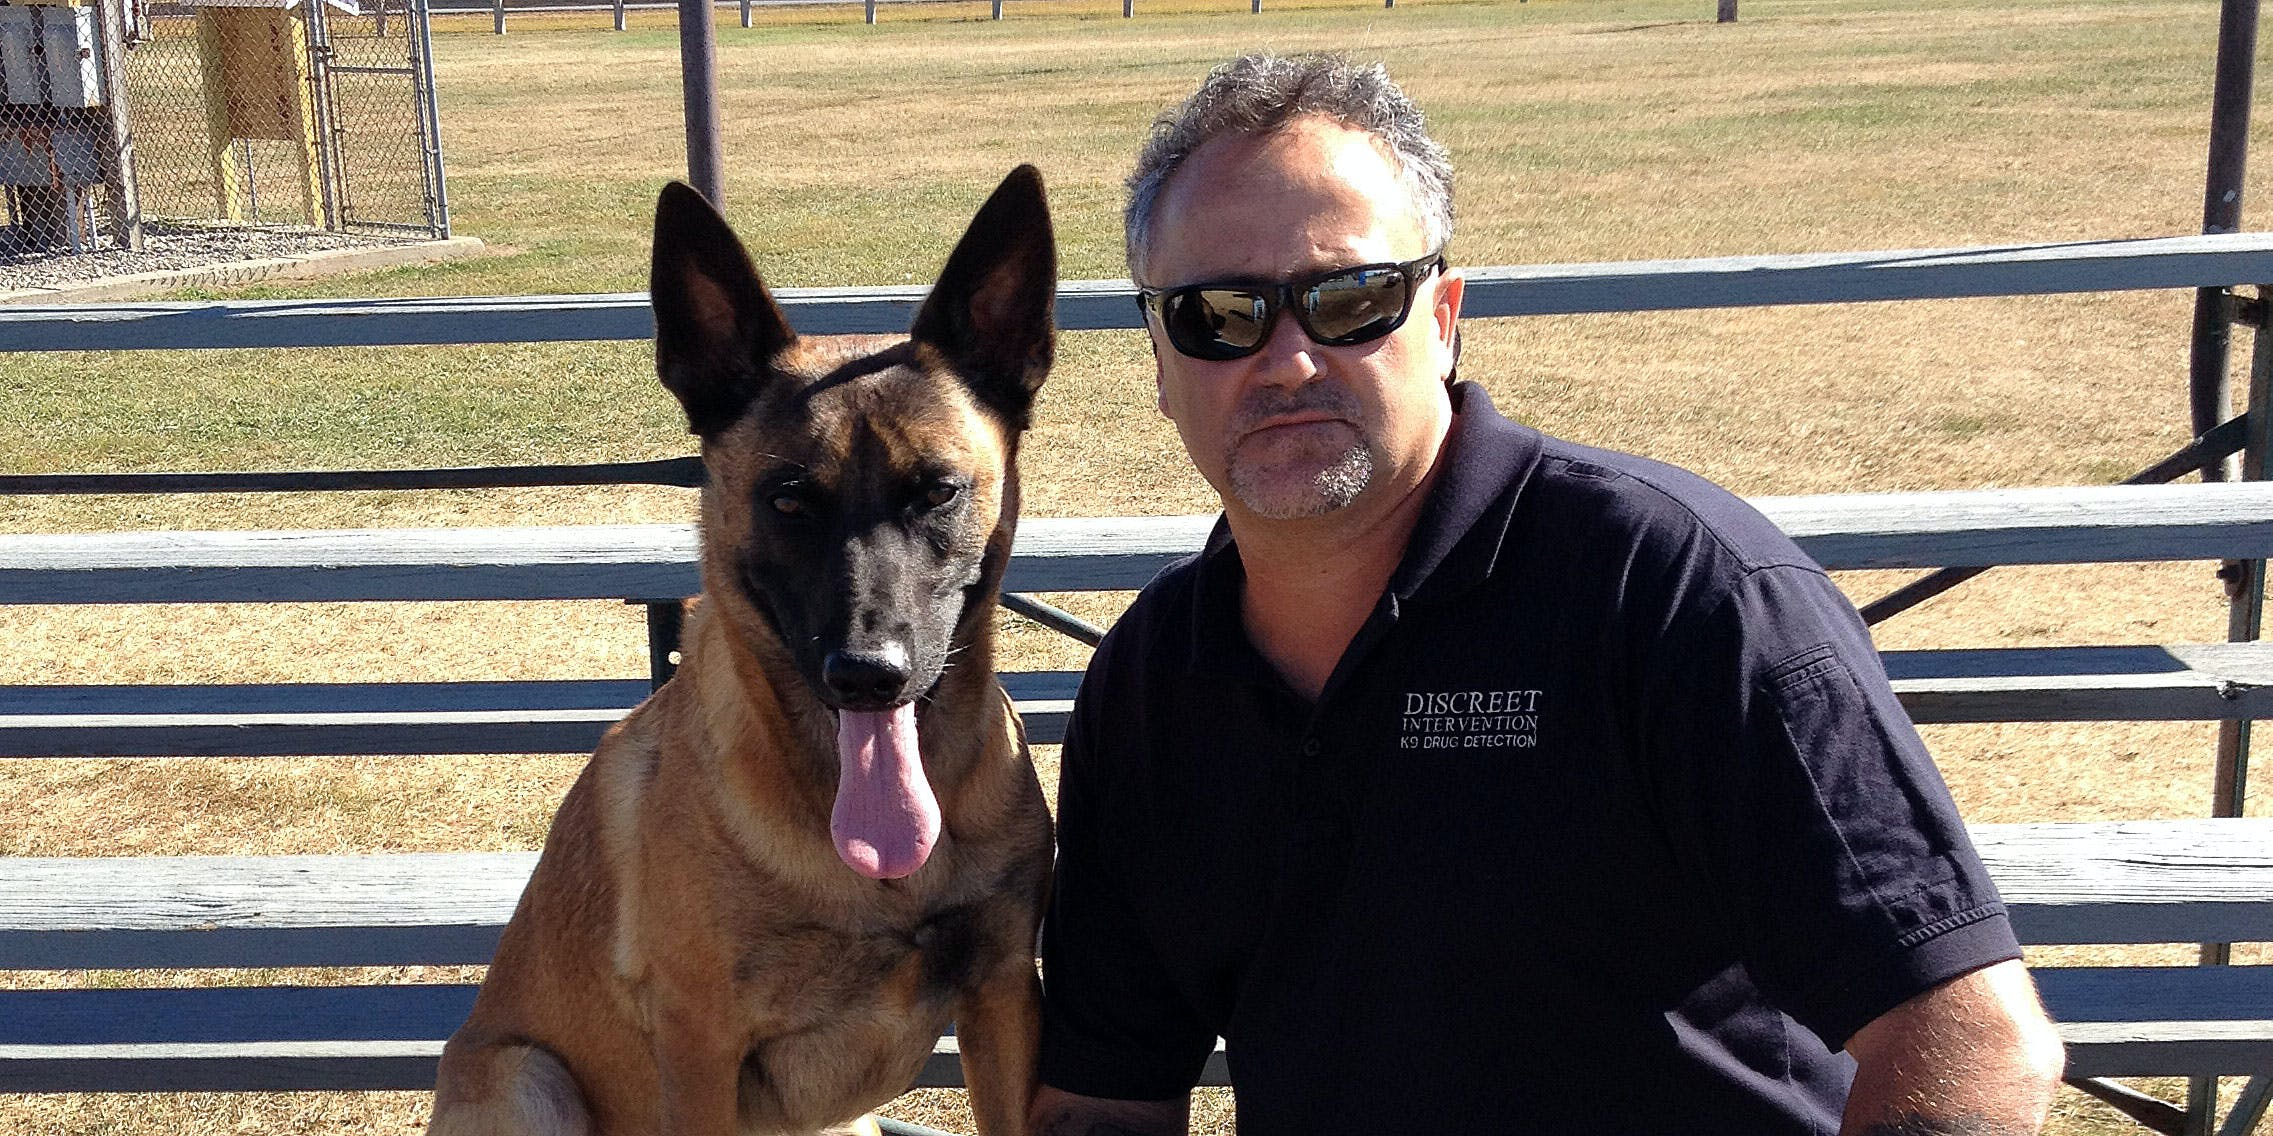 Discreet Intervention: The Man And His Drug-Sniffing Dog Fighting The Opioid Crisis